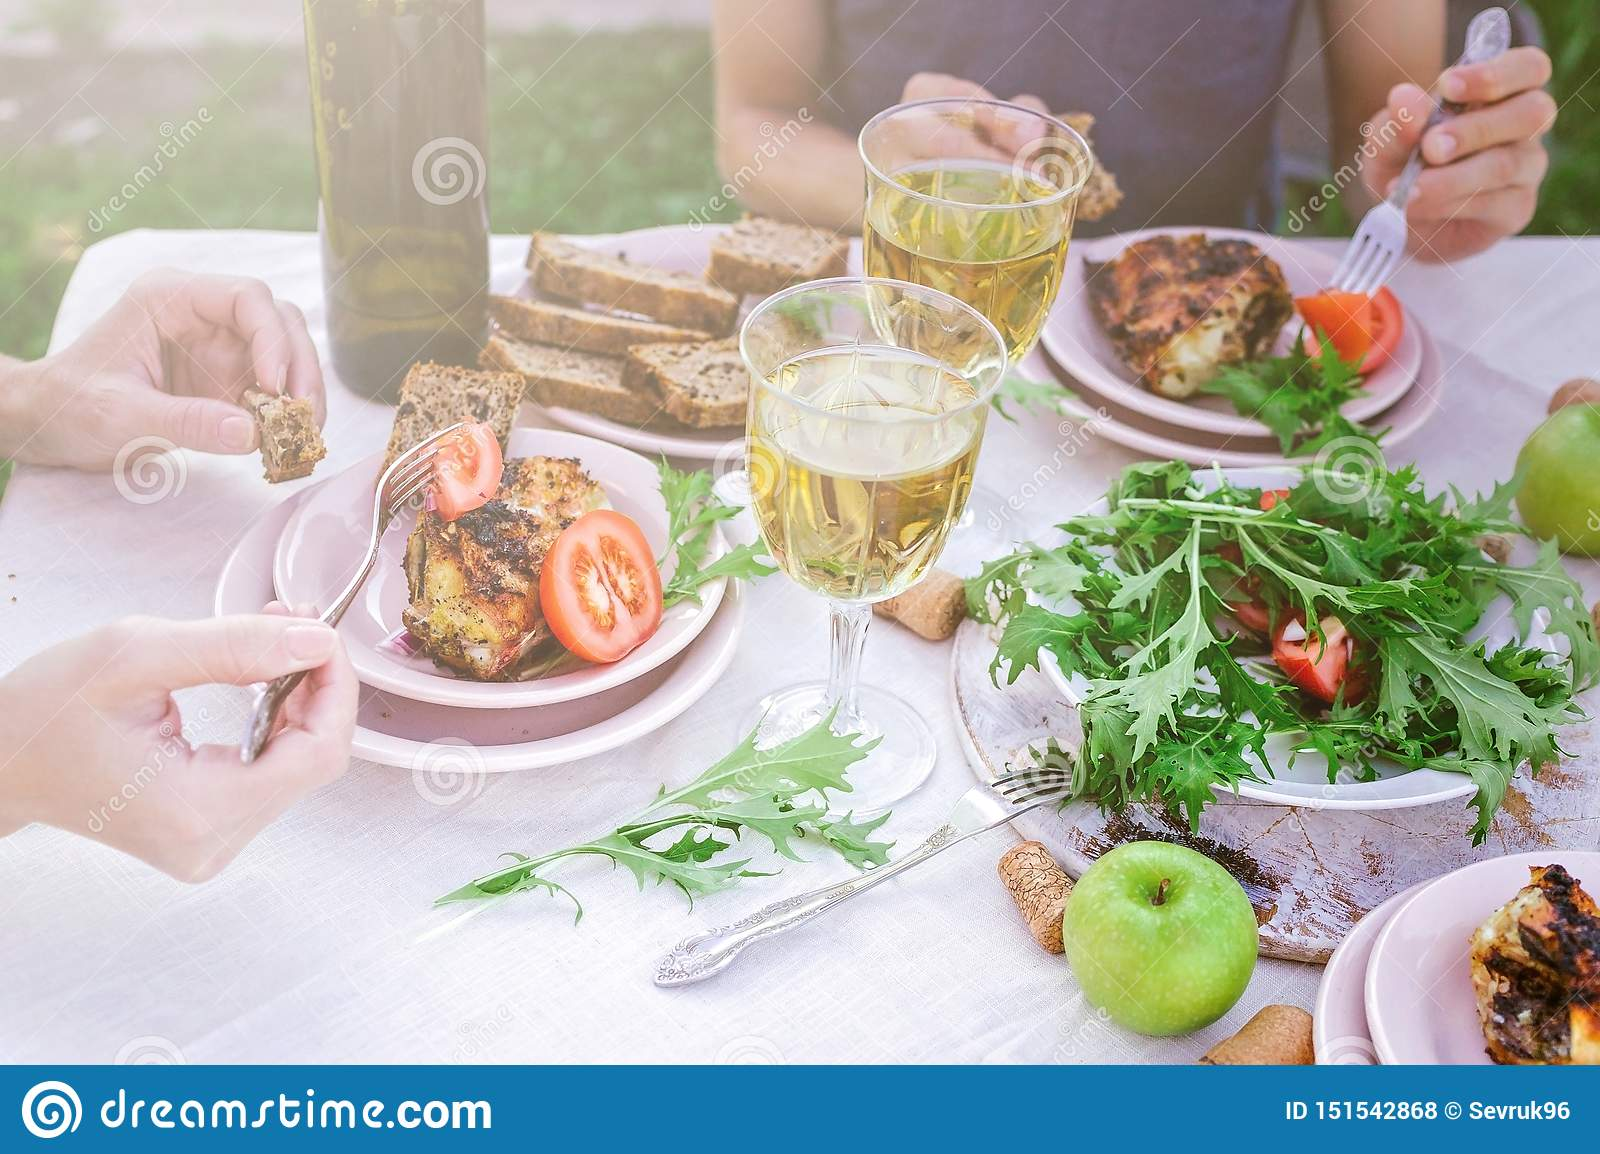 People eat in the garden at the table. Dinner concept with wine in the fresh air. Grilled sea fish and salads with vegetables and